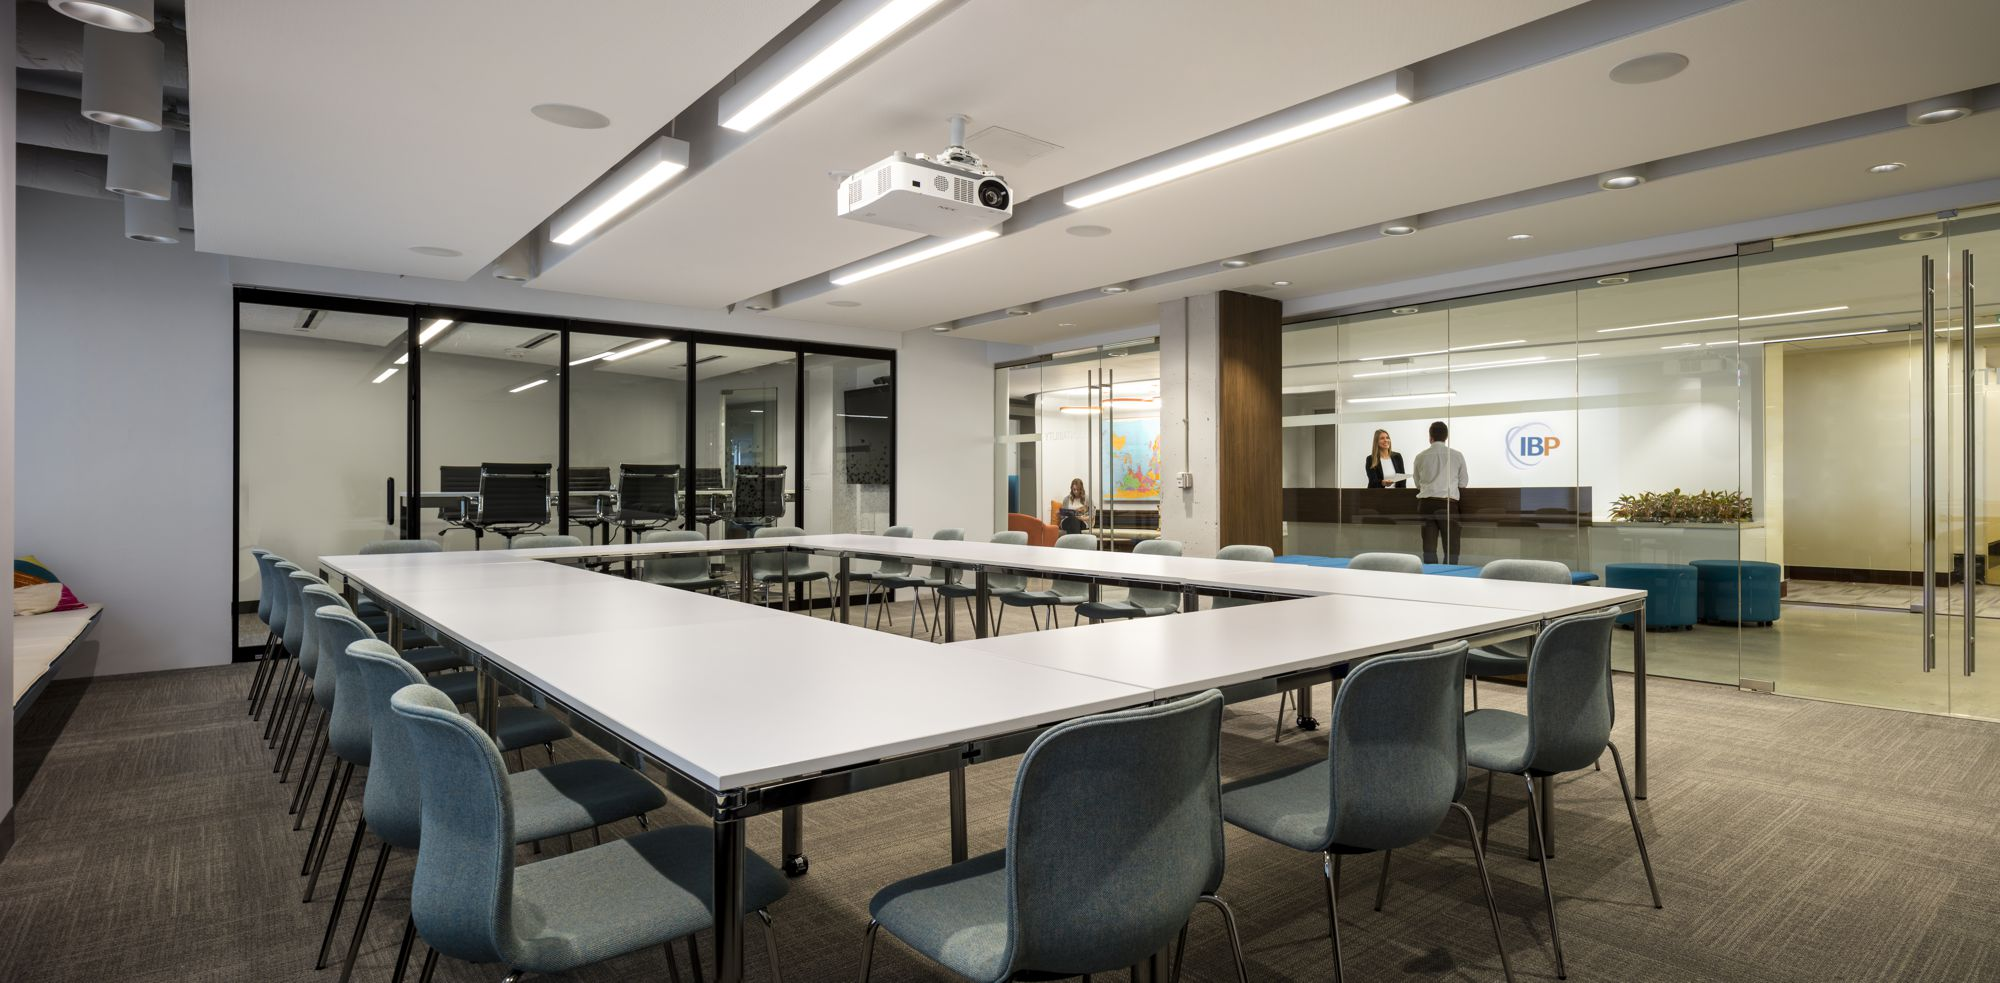 The meeting room has flexible tables and a glass operable wall to expand the room or create a prefunction space.